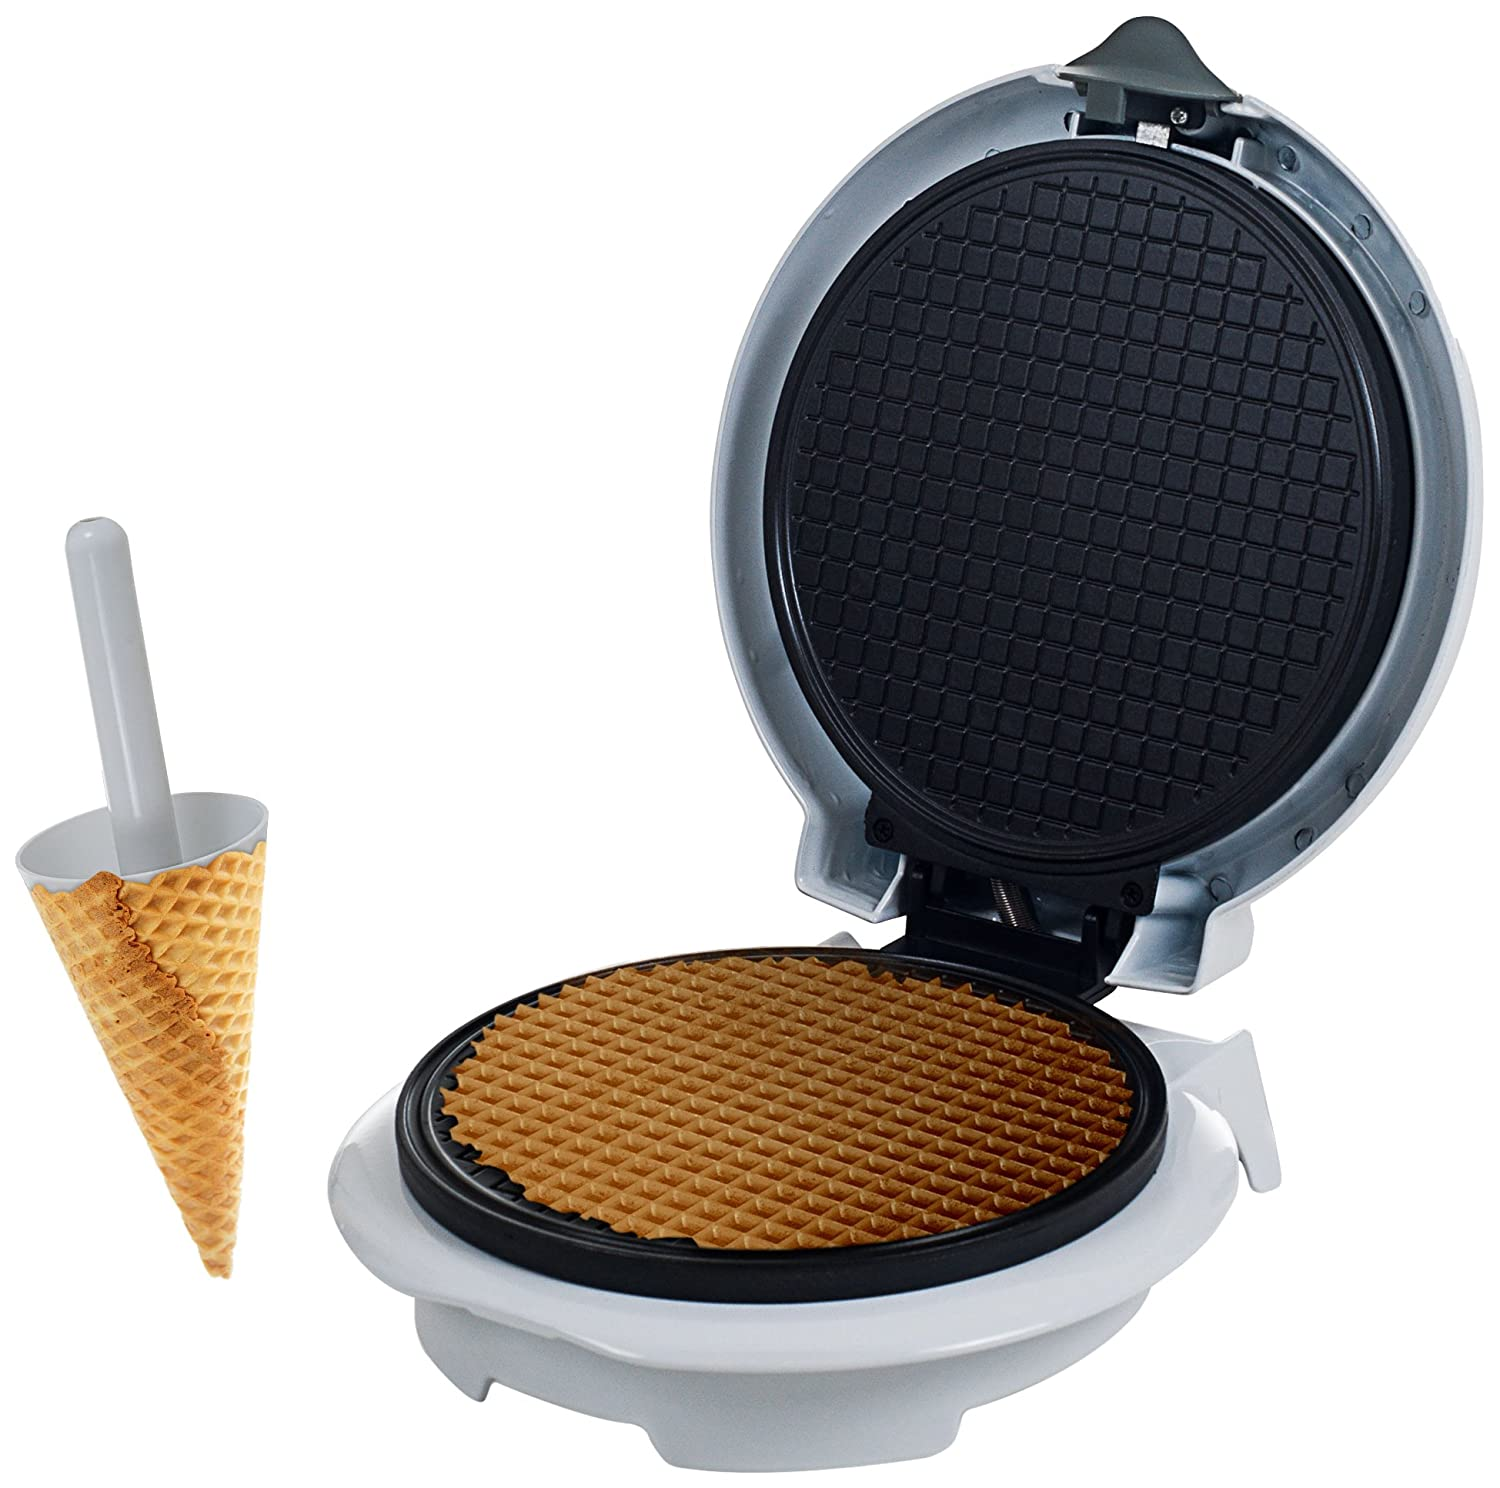 Chef Buddy 82-MM1234 Waffle Cone Maker with Cone Form Trademark GLB